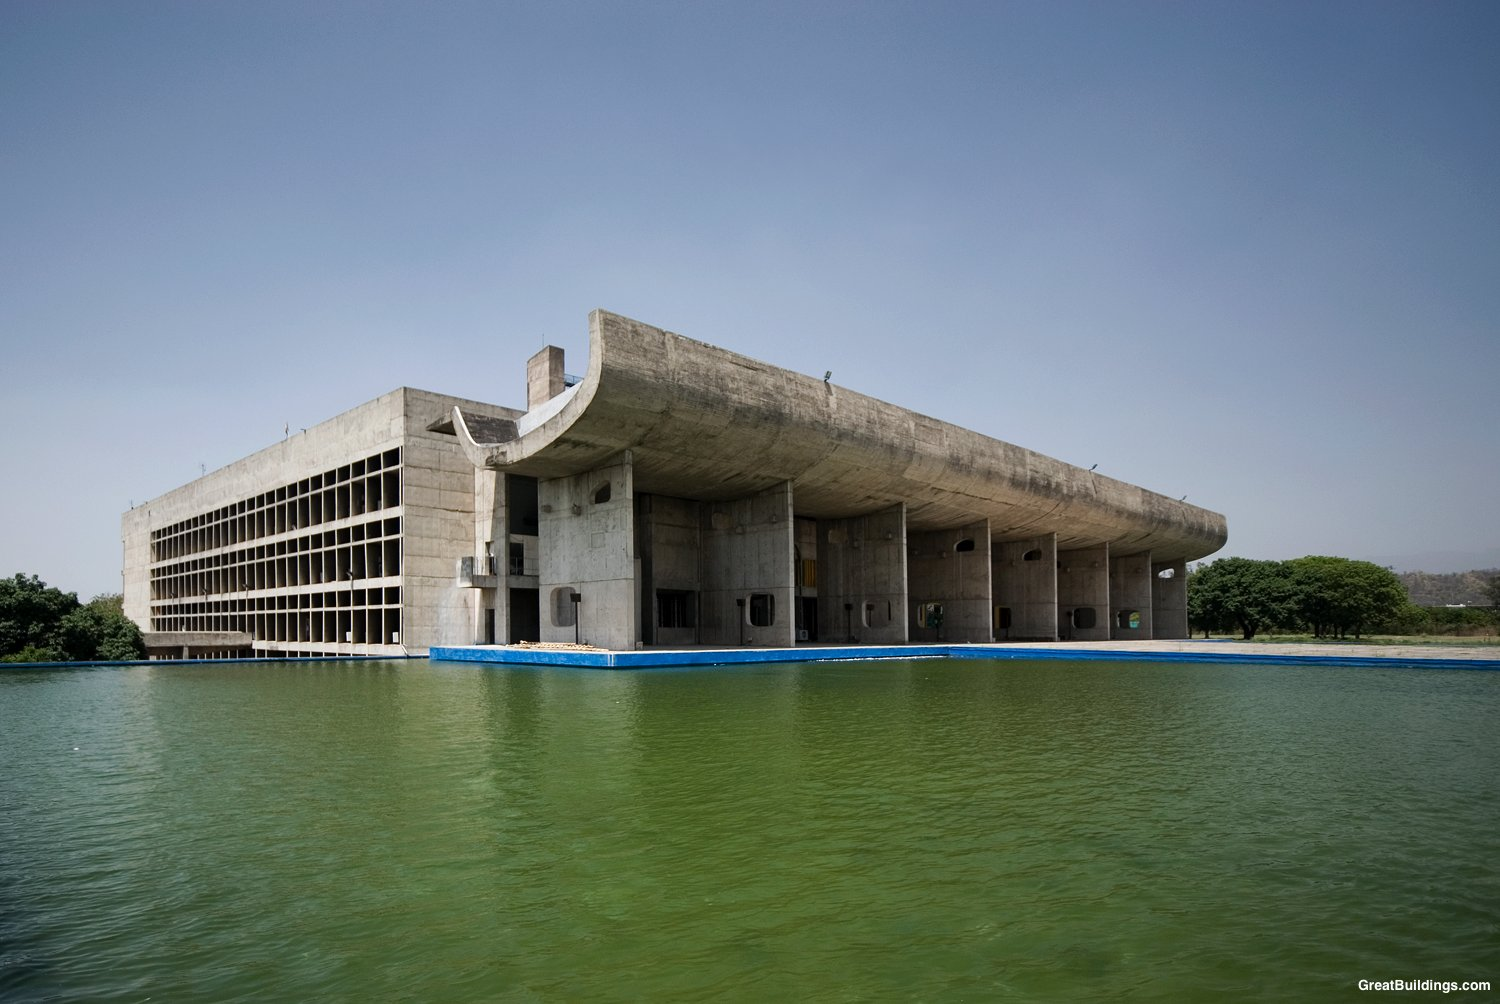 lutyen s delhi and corbusier s chandigarh Corbusier & lutyens: a tale of two cities the red sandstone that built new delhi's magnificent structures has aged it is chandigarh's iconic public.